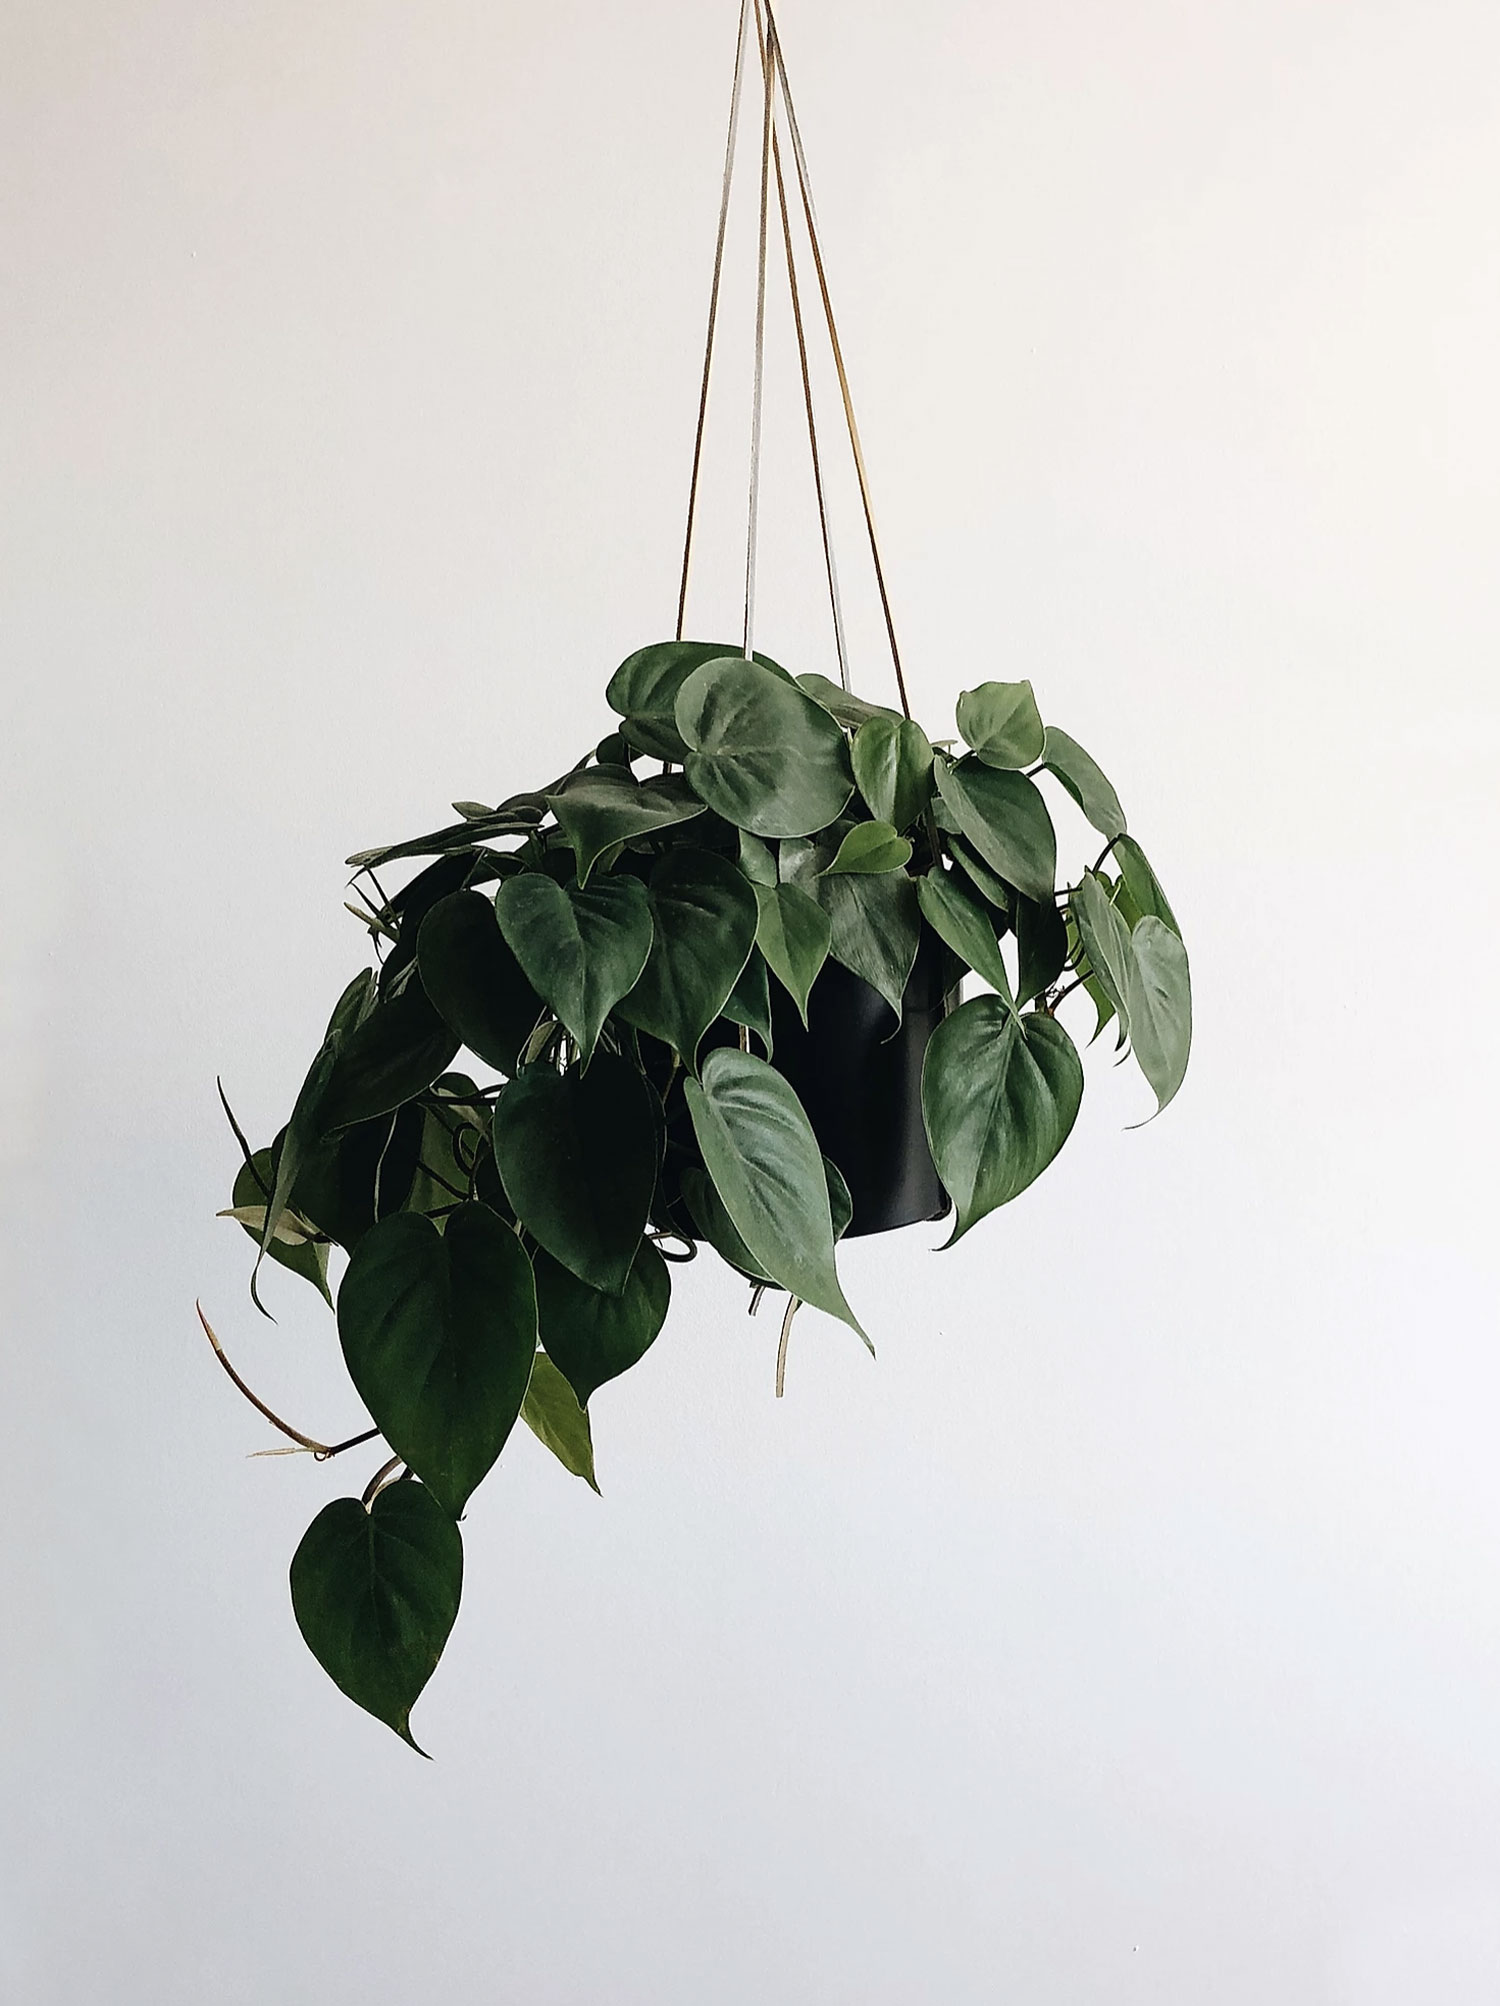 iris-co-london-house-plants-how-to-propagate-pothos-philodendron-1